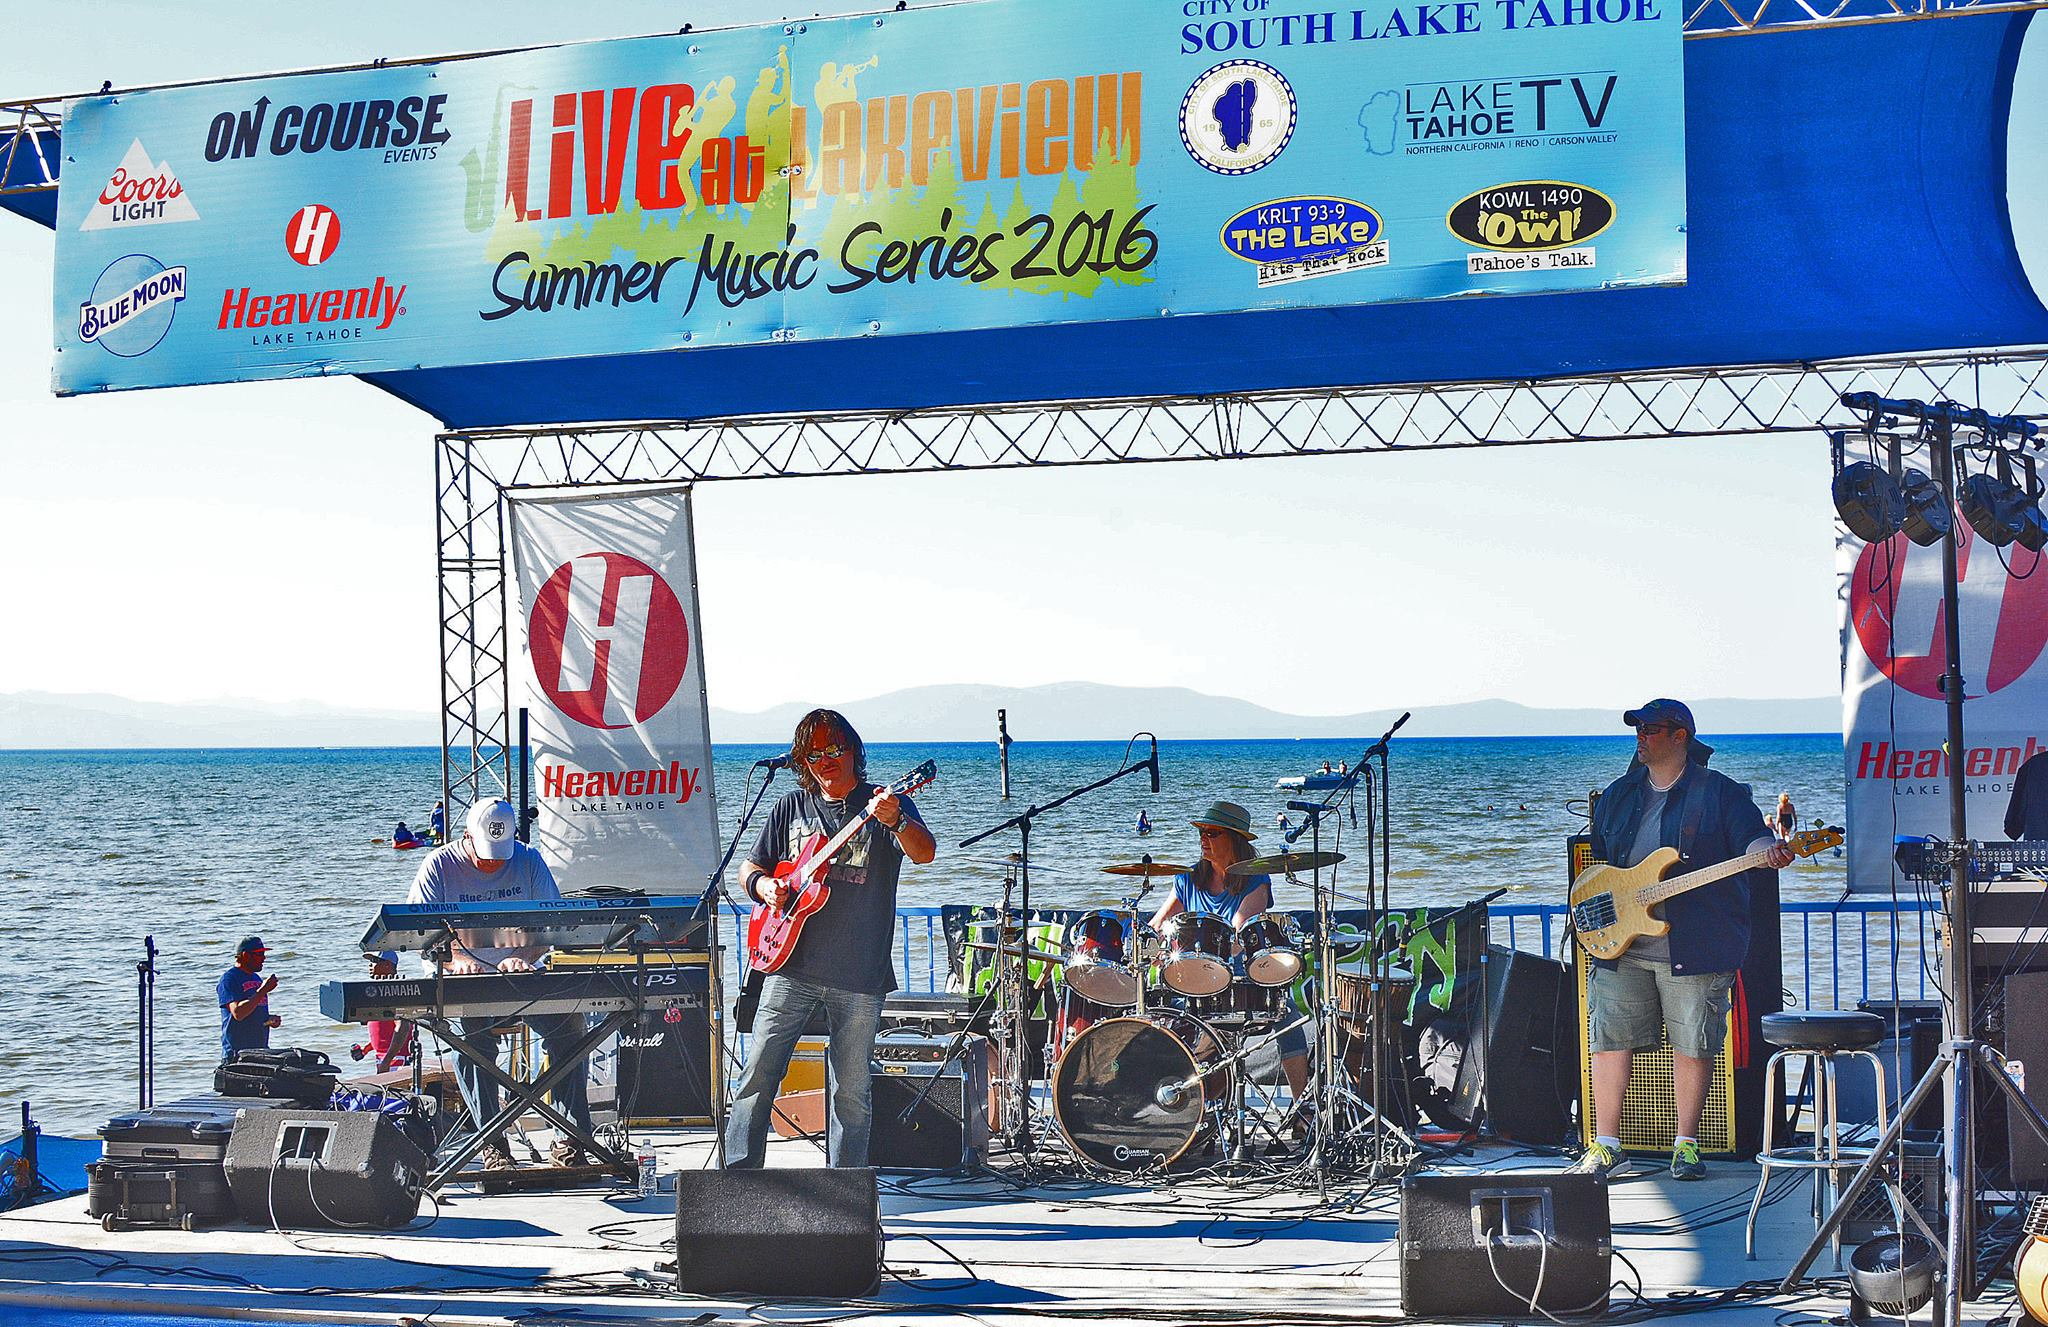 Live at Lakeview Series Finale @ Lakeview Commons | South Lake Tahoe | California | United States